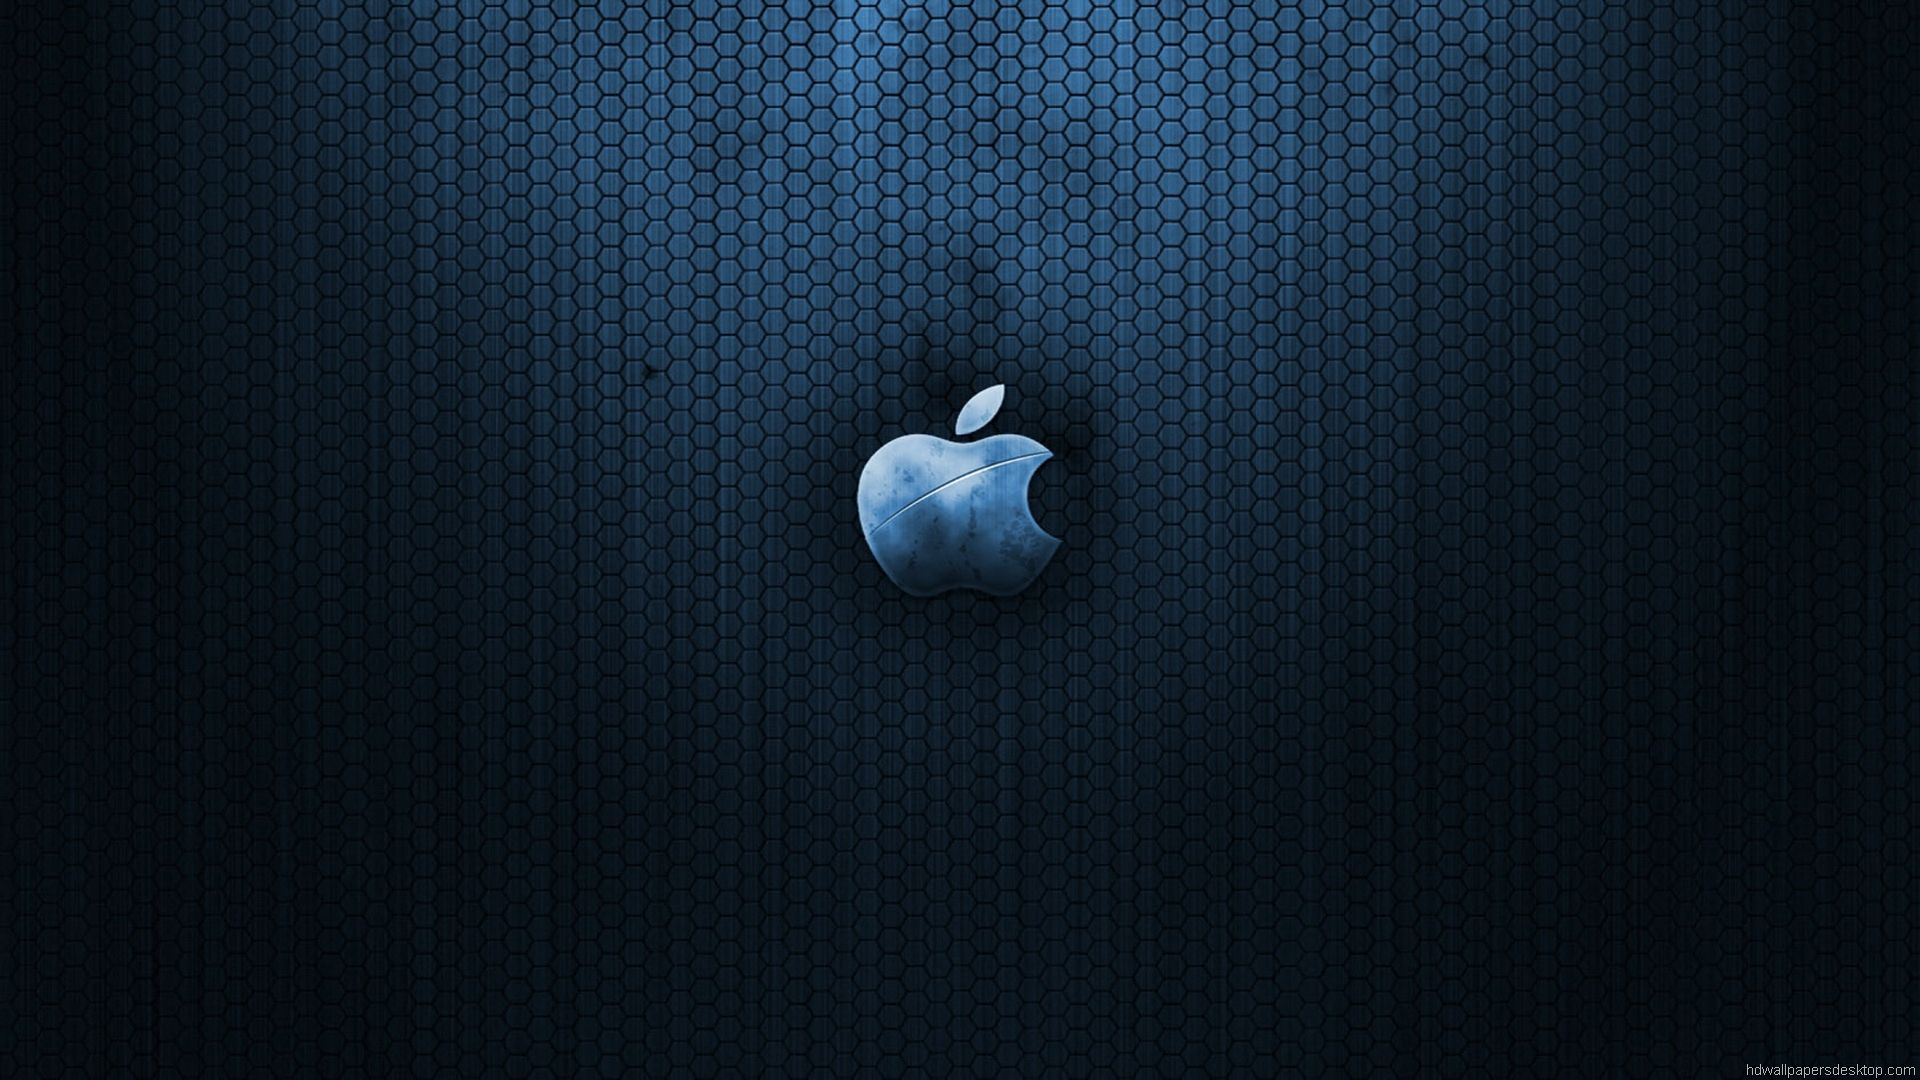 page full hd p brands wallpapers desktop backgrounds hd | hd